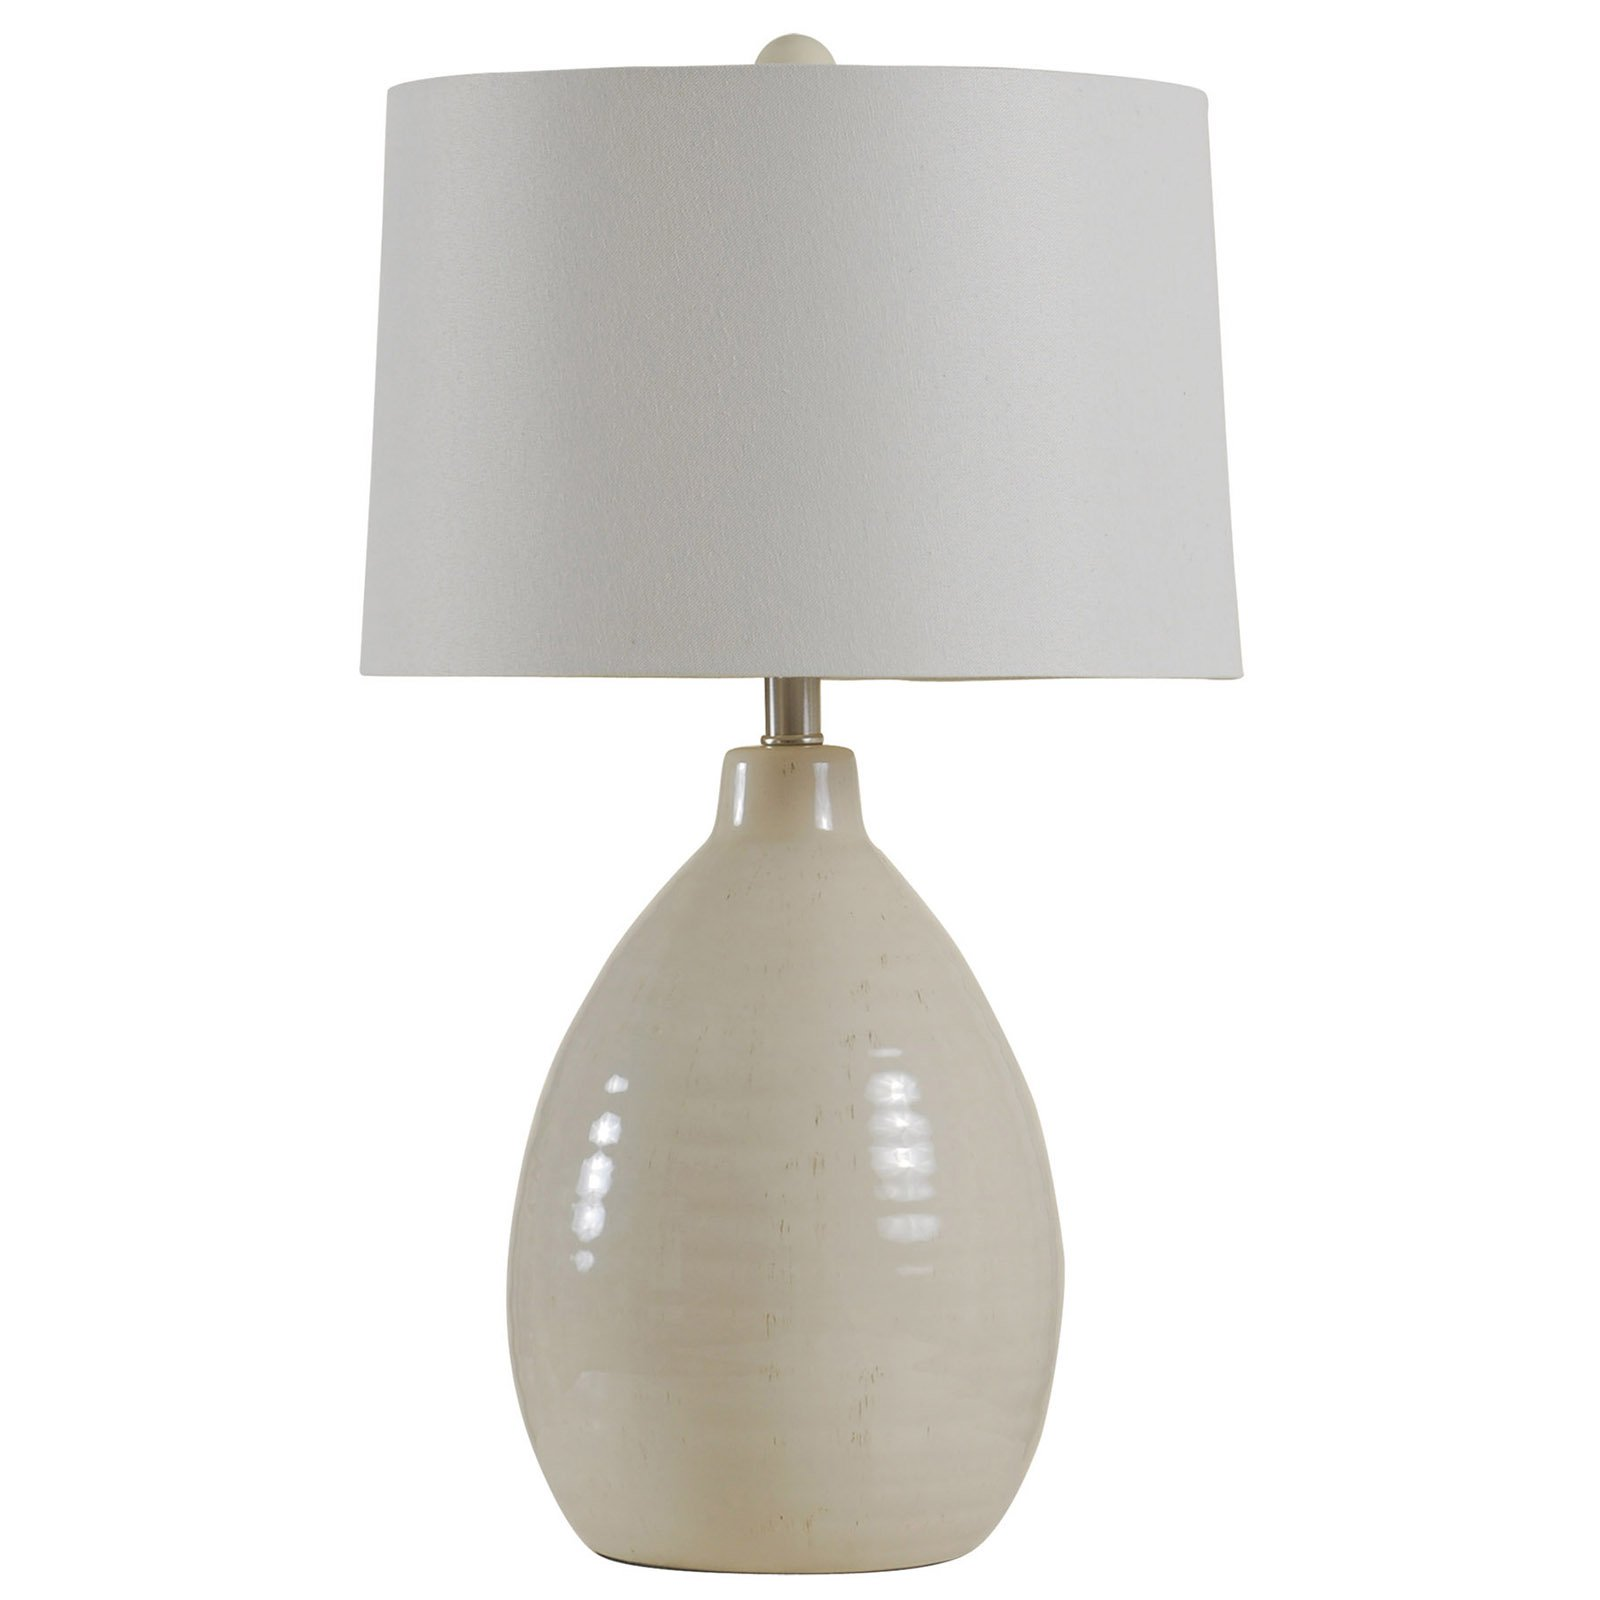 StyleCraft Gourd Ceramic Table Lamp